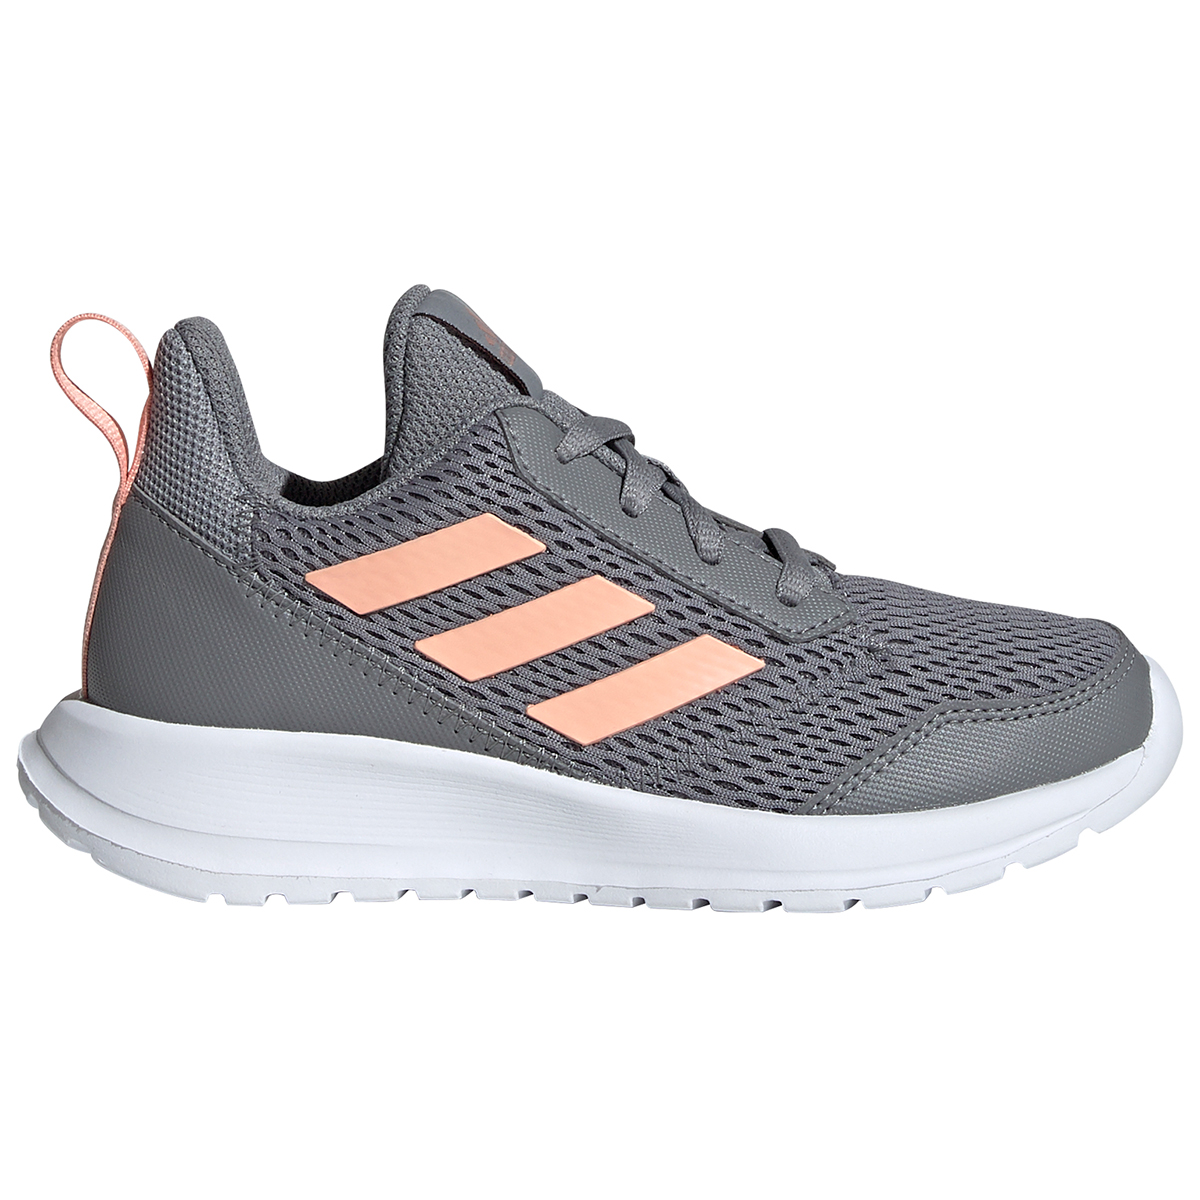 Adidas Girls' Altarun Sneakers - Black, 13